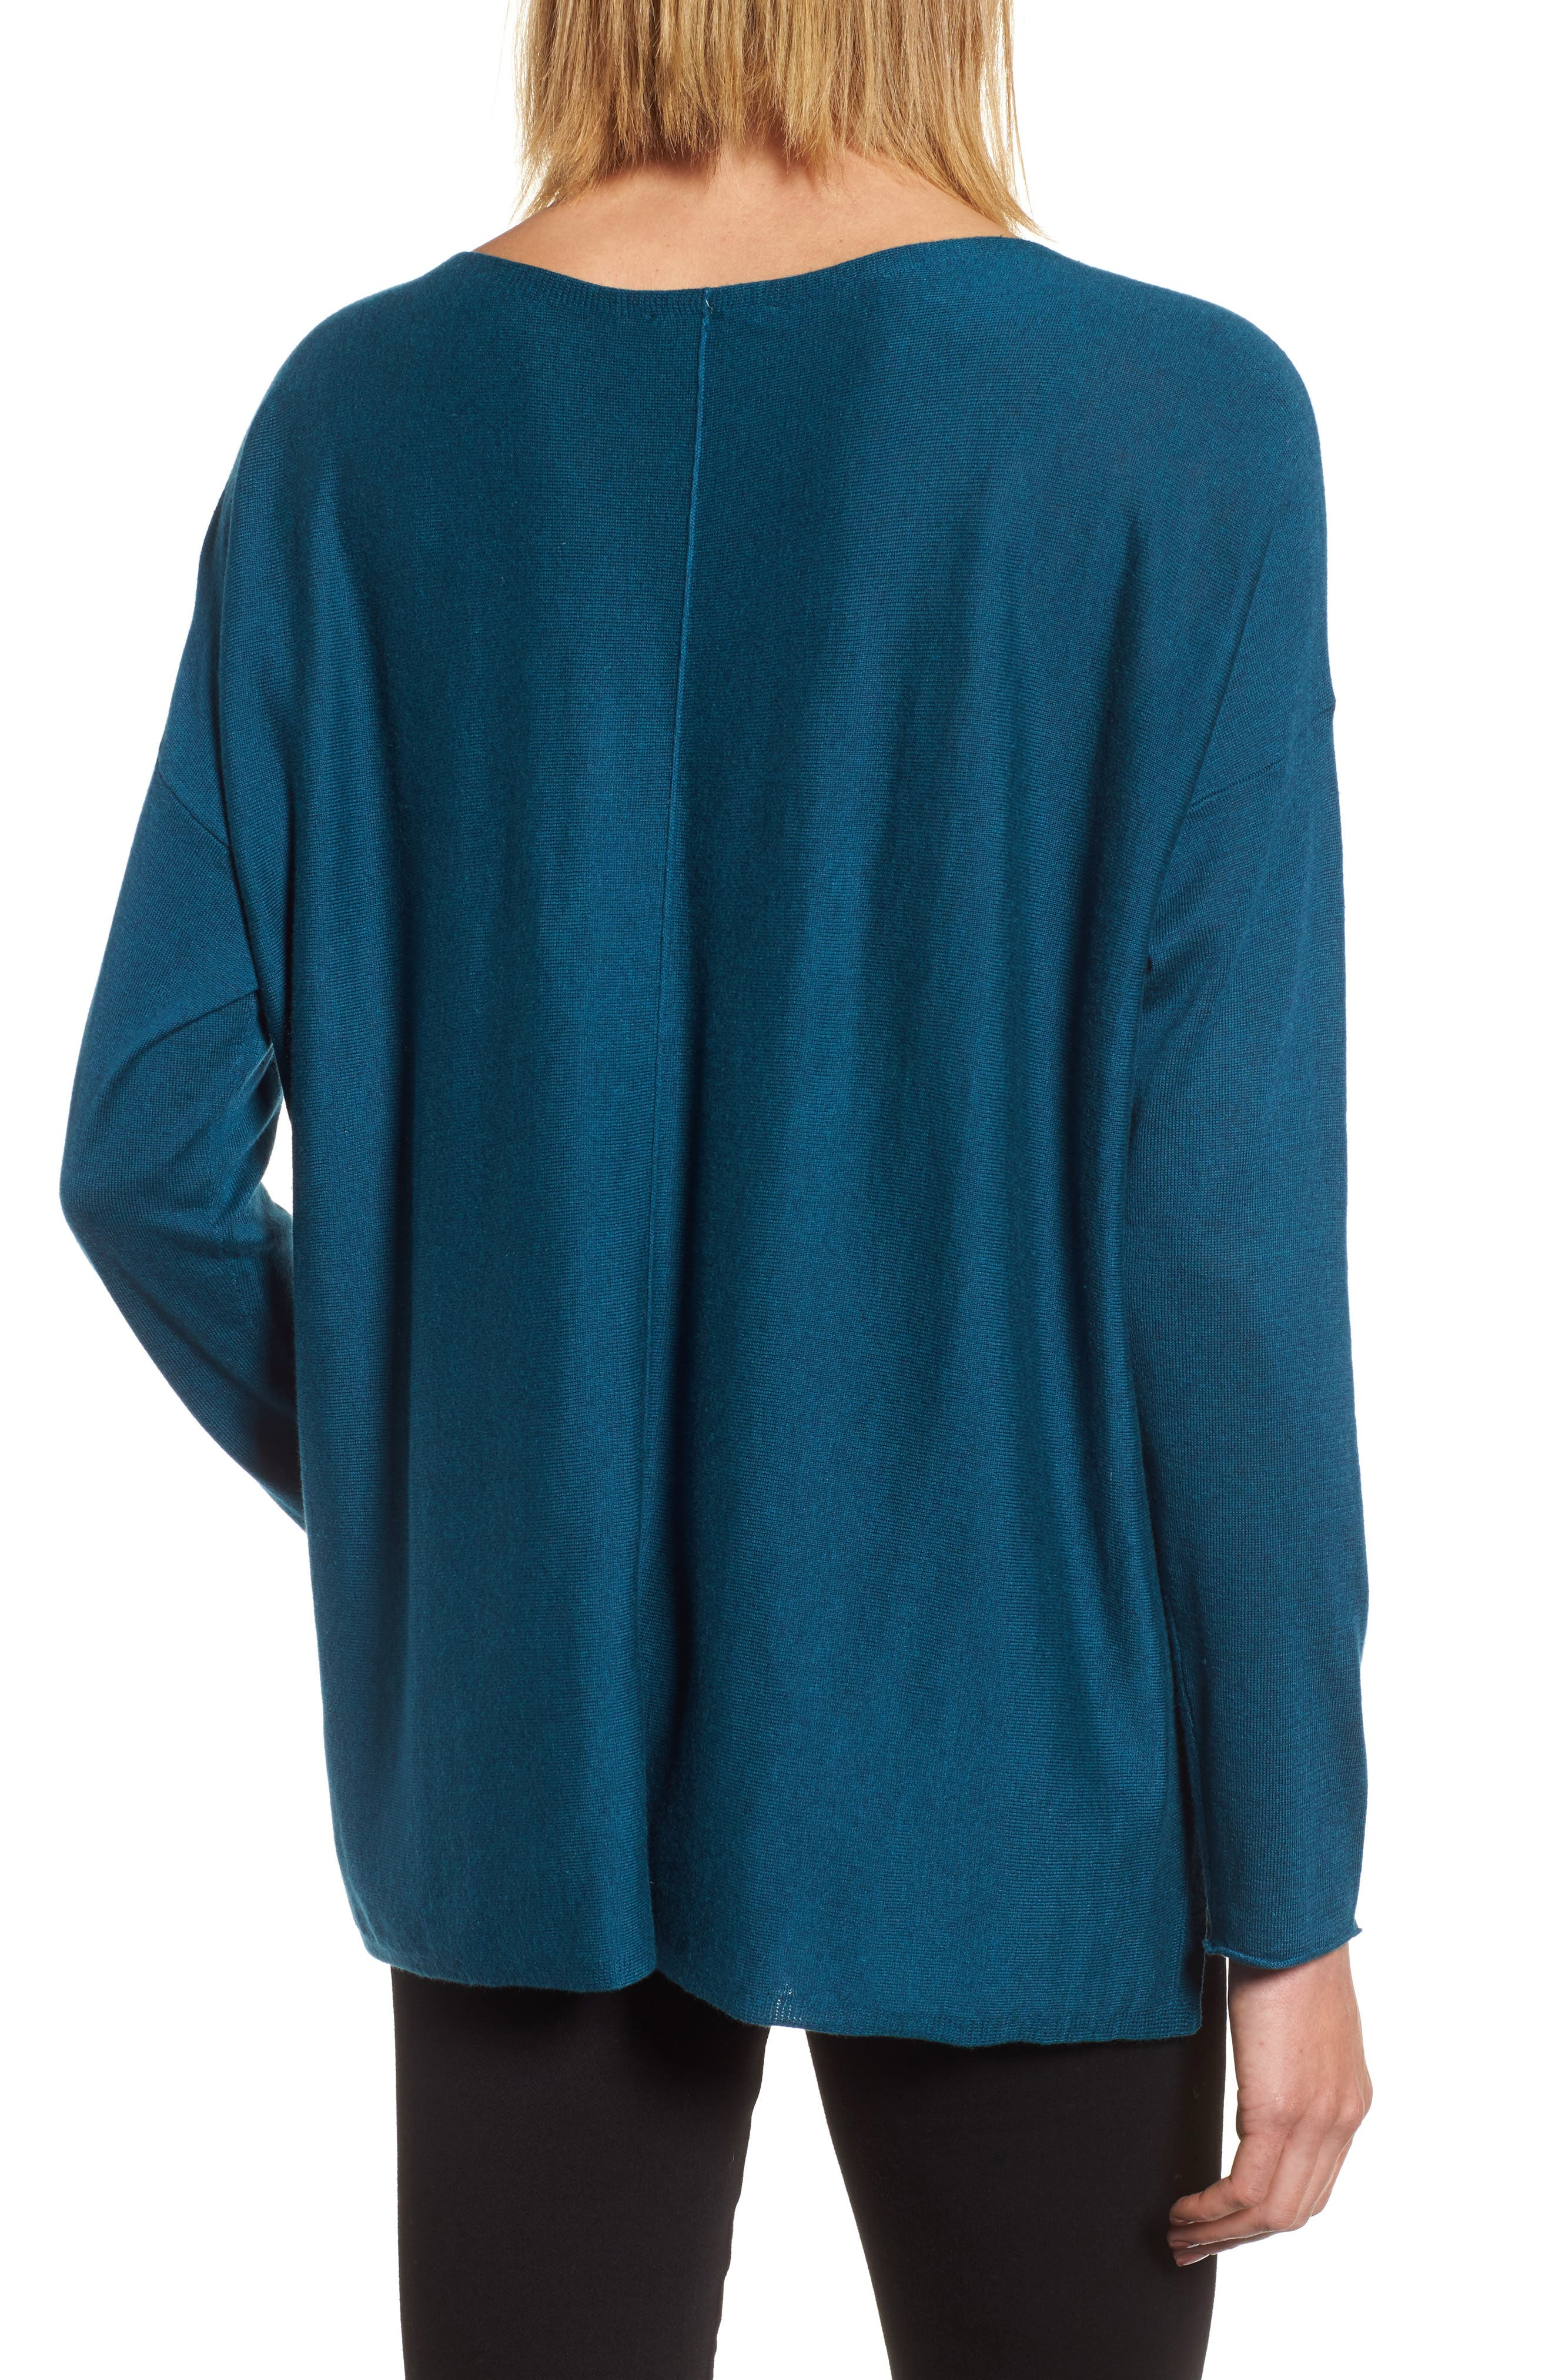 Tencel<sup>®</sup> Lyocell Blend High/Low Sweater,                             Alternate thumbnail 10, color,